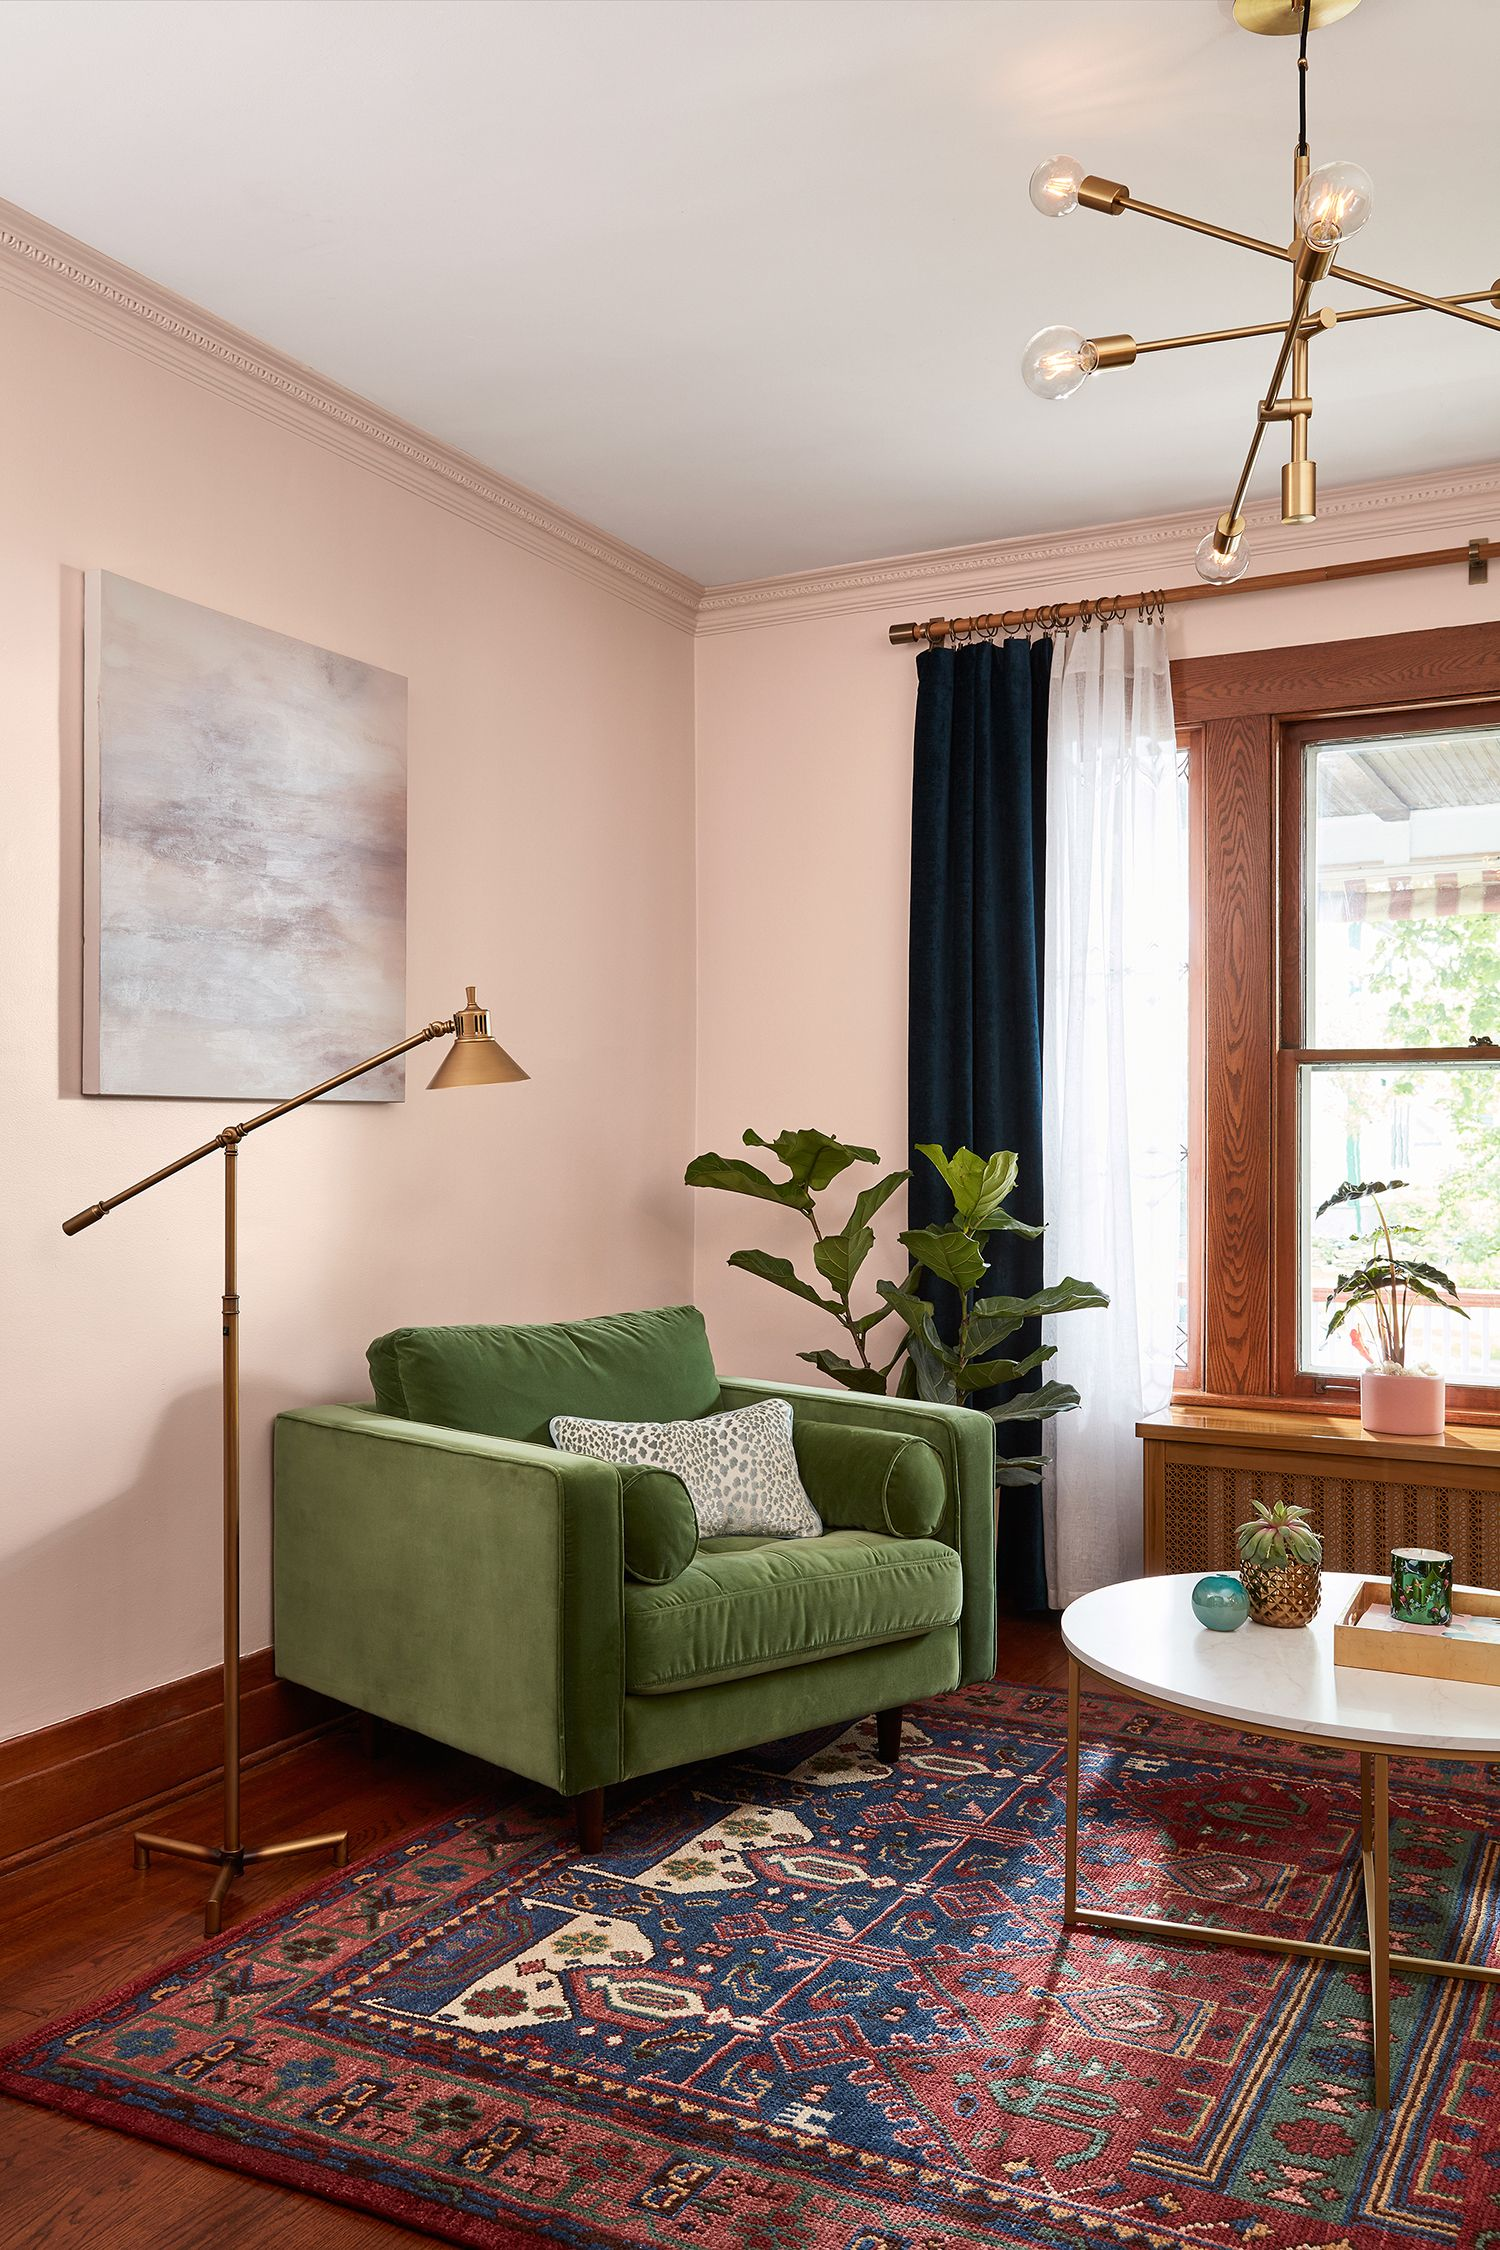 Nature Lovers Will Appreciate Valspar's 2020 Colors of the Year